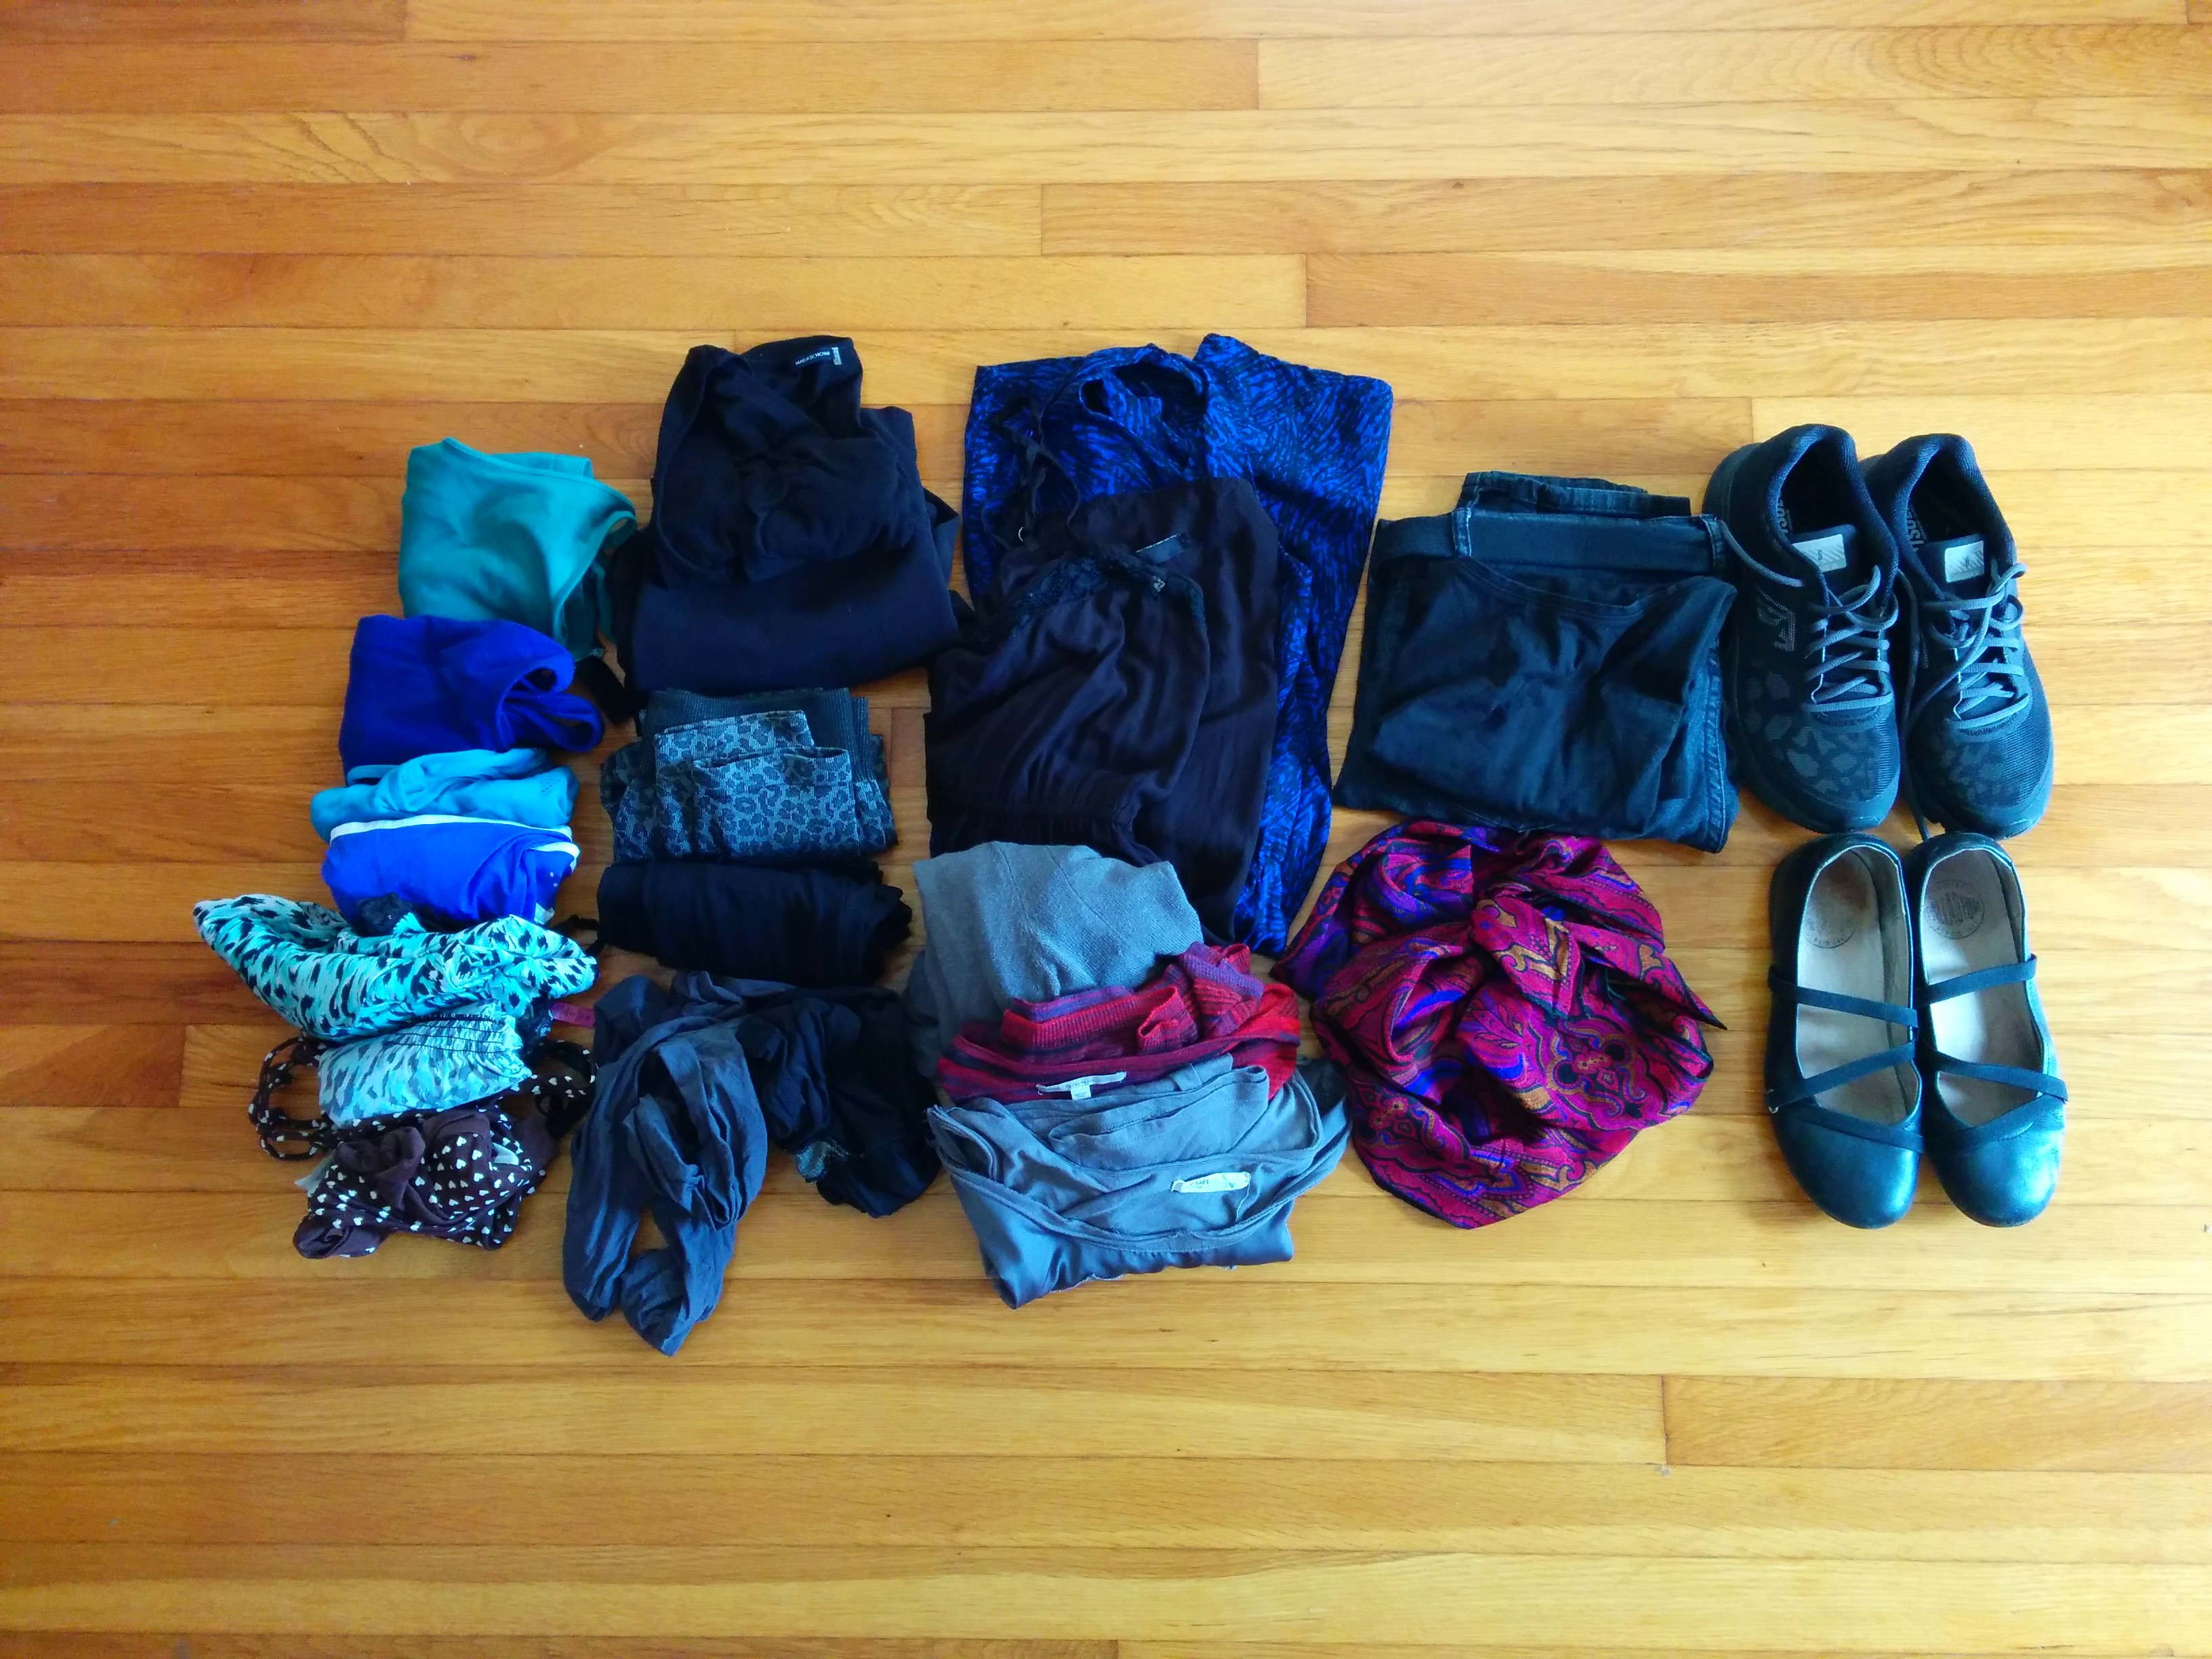 Clothes for a 2-week trip to Europe